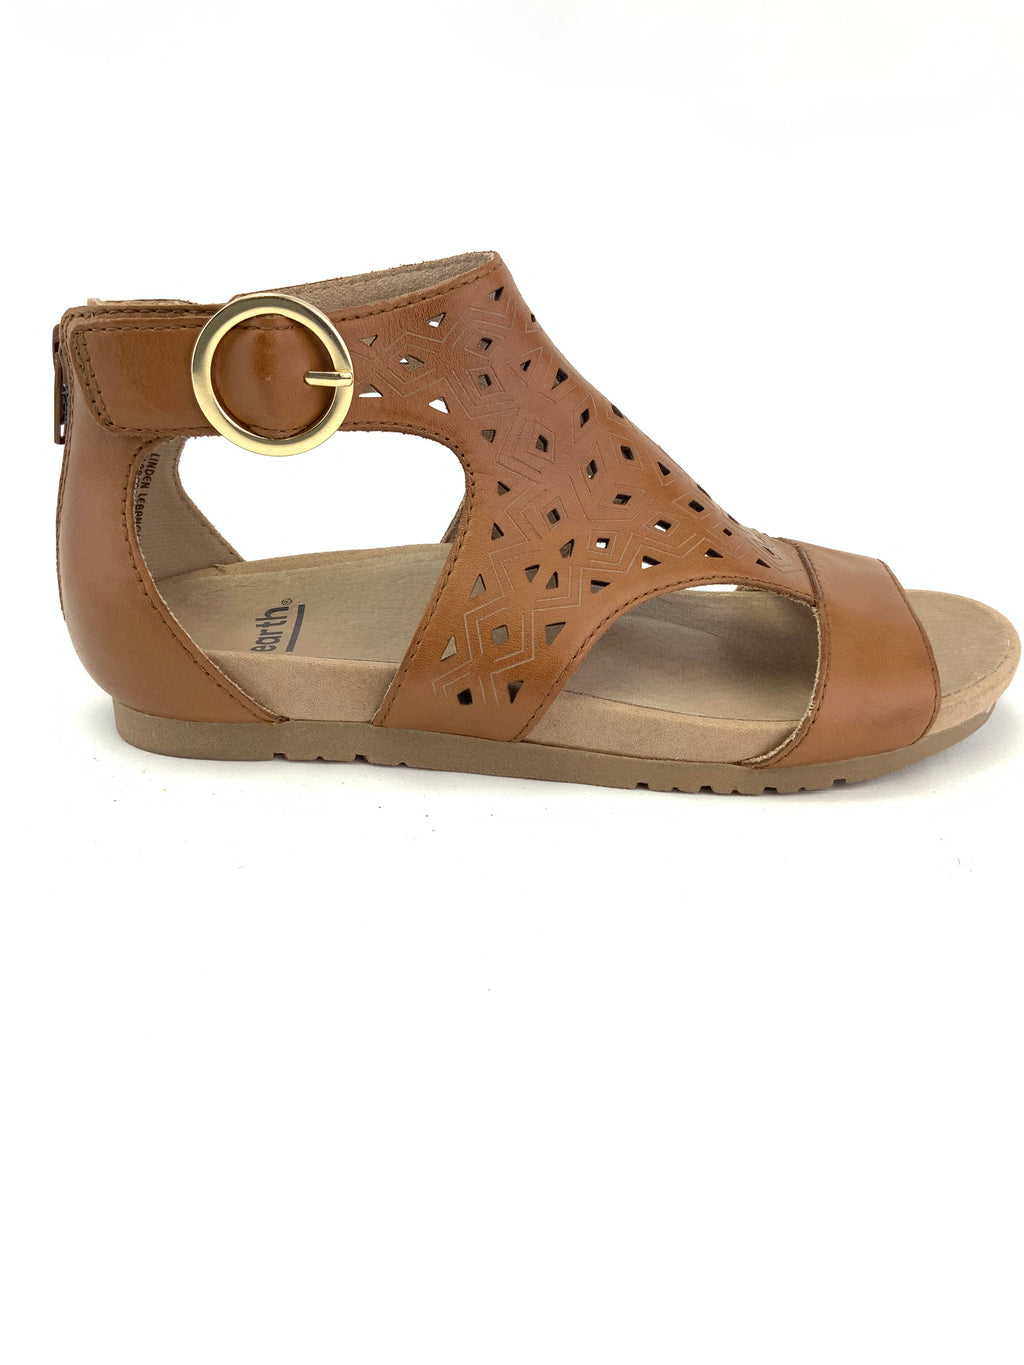 Earth Linden Lebanon Sandals Size 6.5M